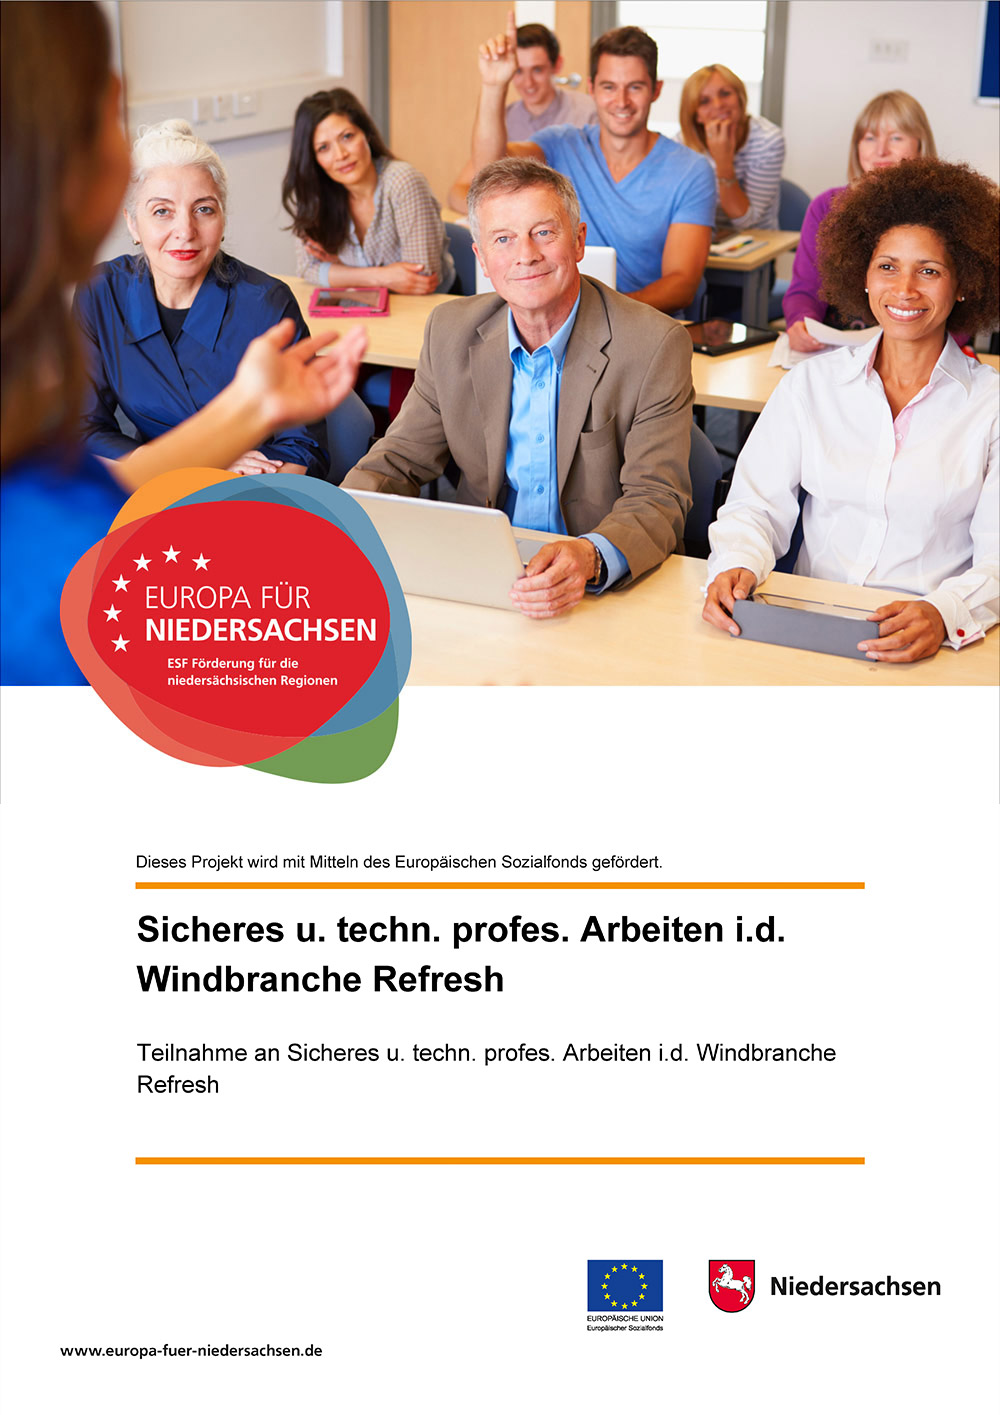 schulung foerderung windbranche refresh